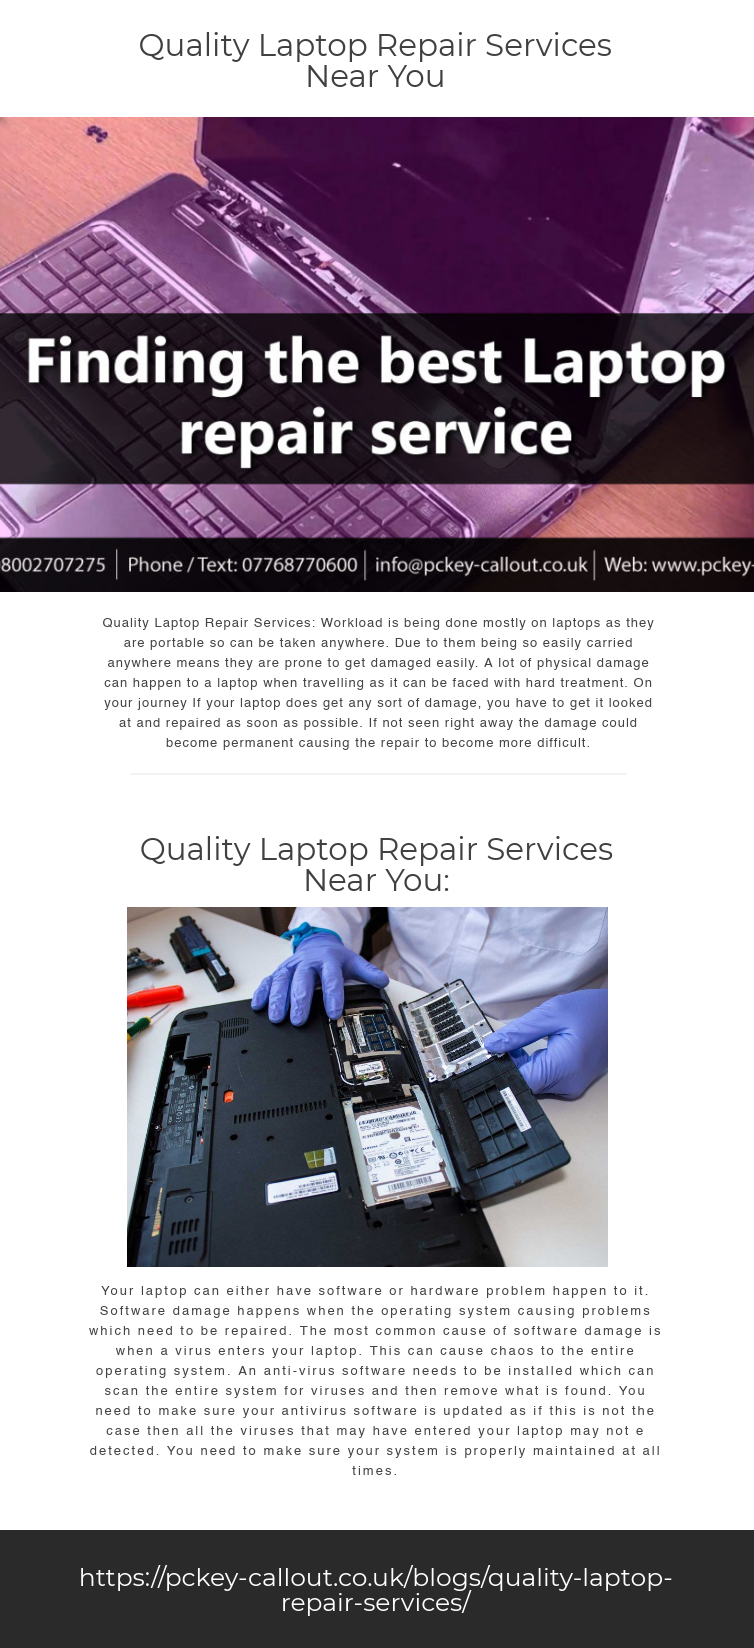 Quality Laptop Repair Services Workload is being done